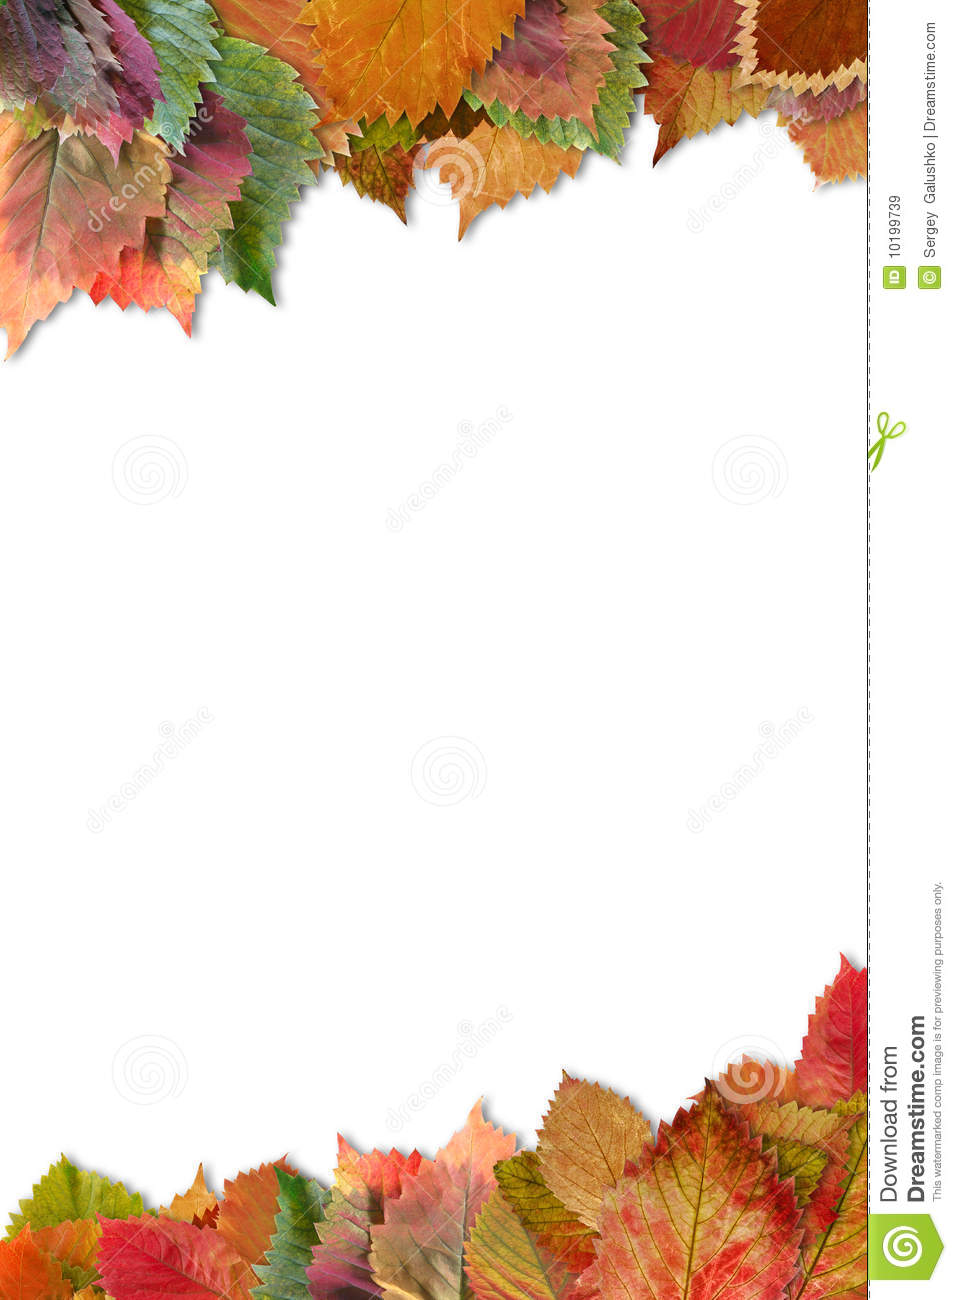 Wallpaper Border Falling Off Frame From Autumn Leaves With Shadow Stock Image Image